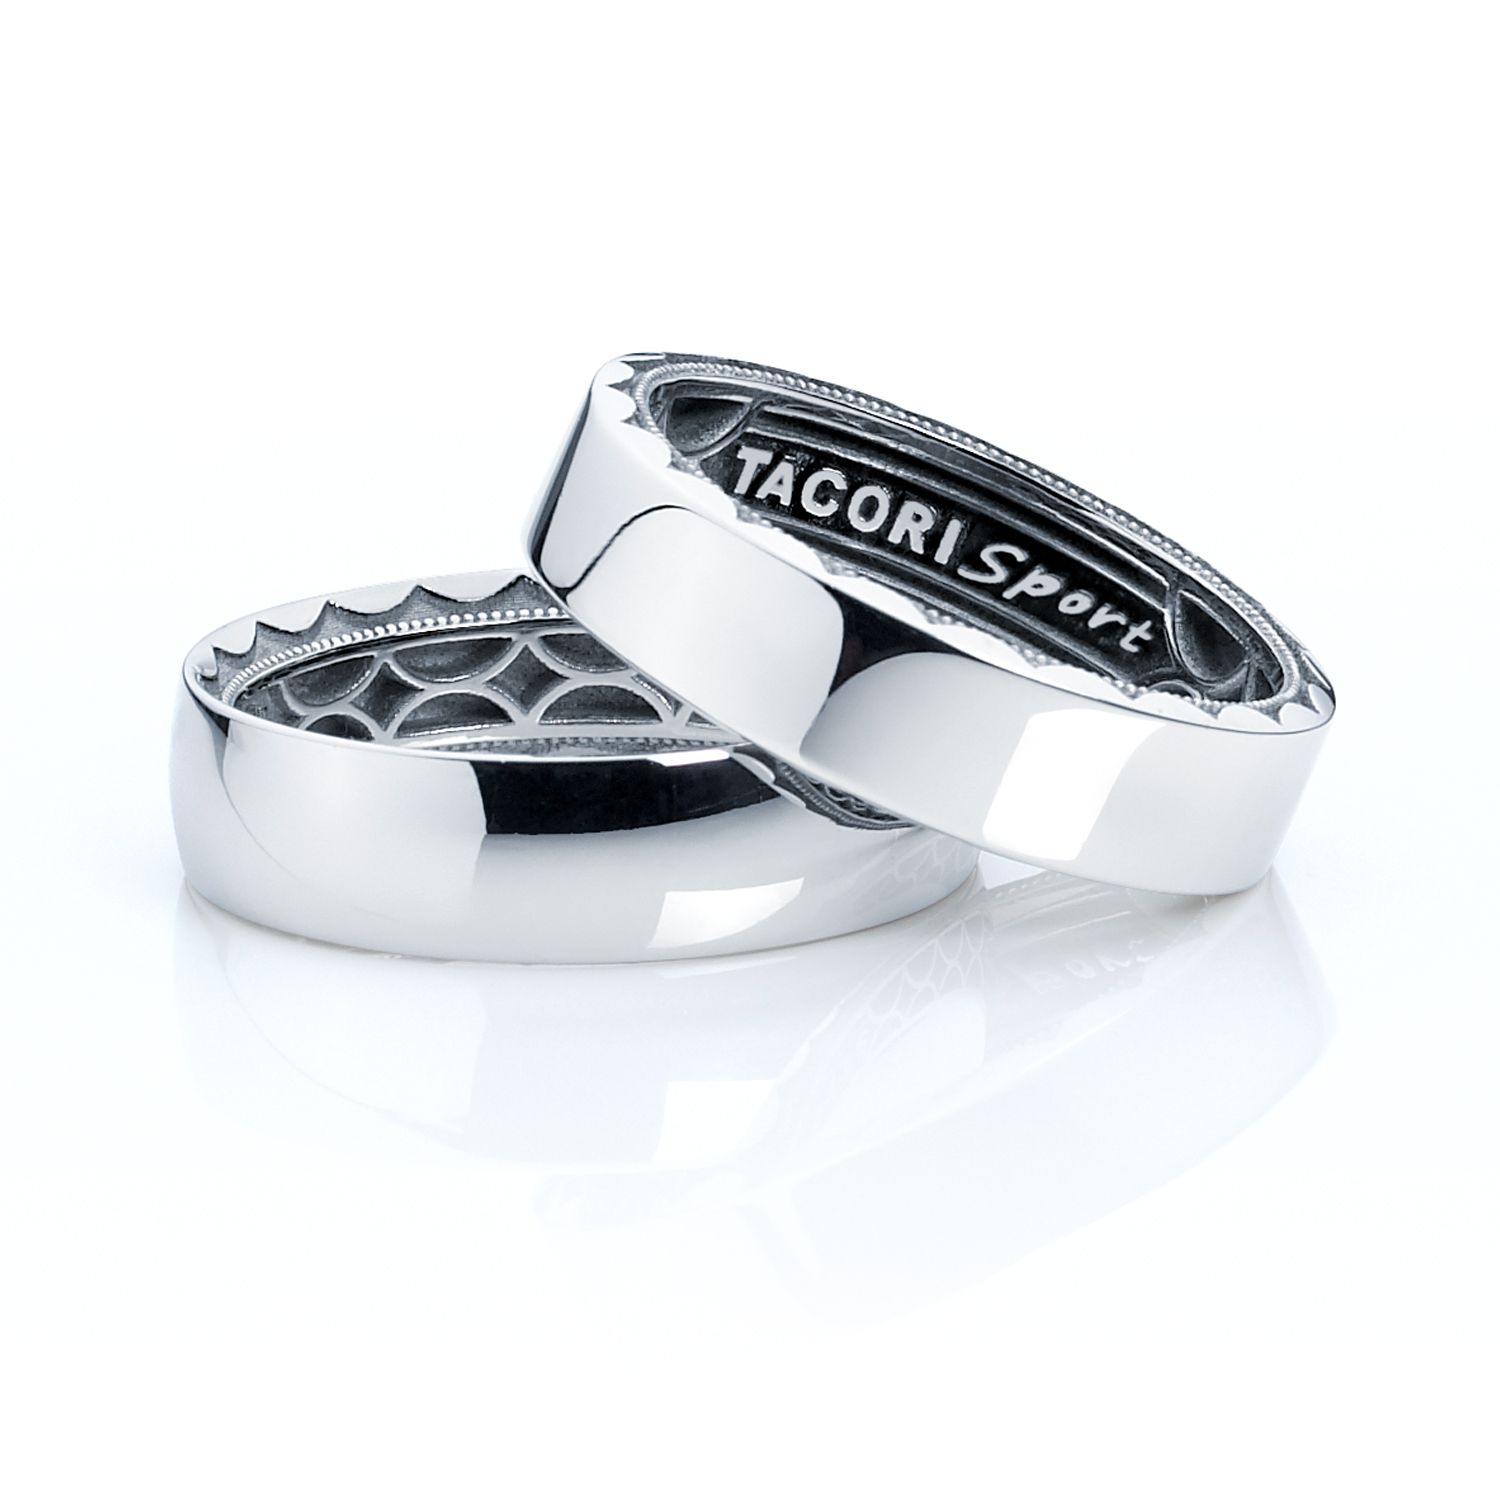 tacori mens wedding bands Receive a complementary Tacori Sport Band in stainless steel with your purchase of any Tacori gentlemen s Men Wedding